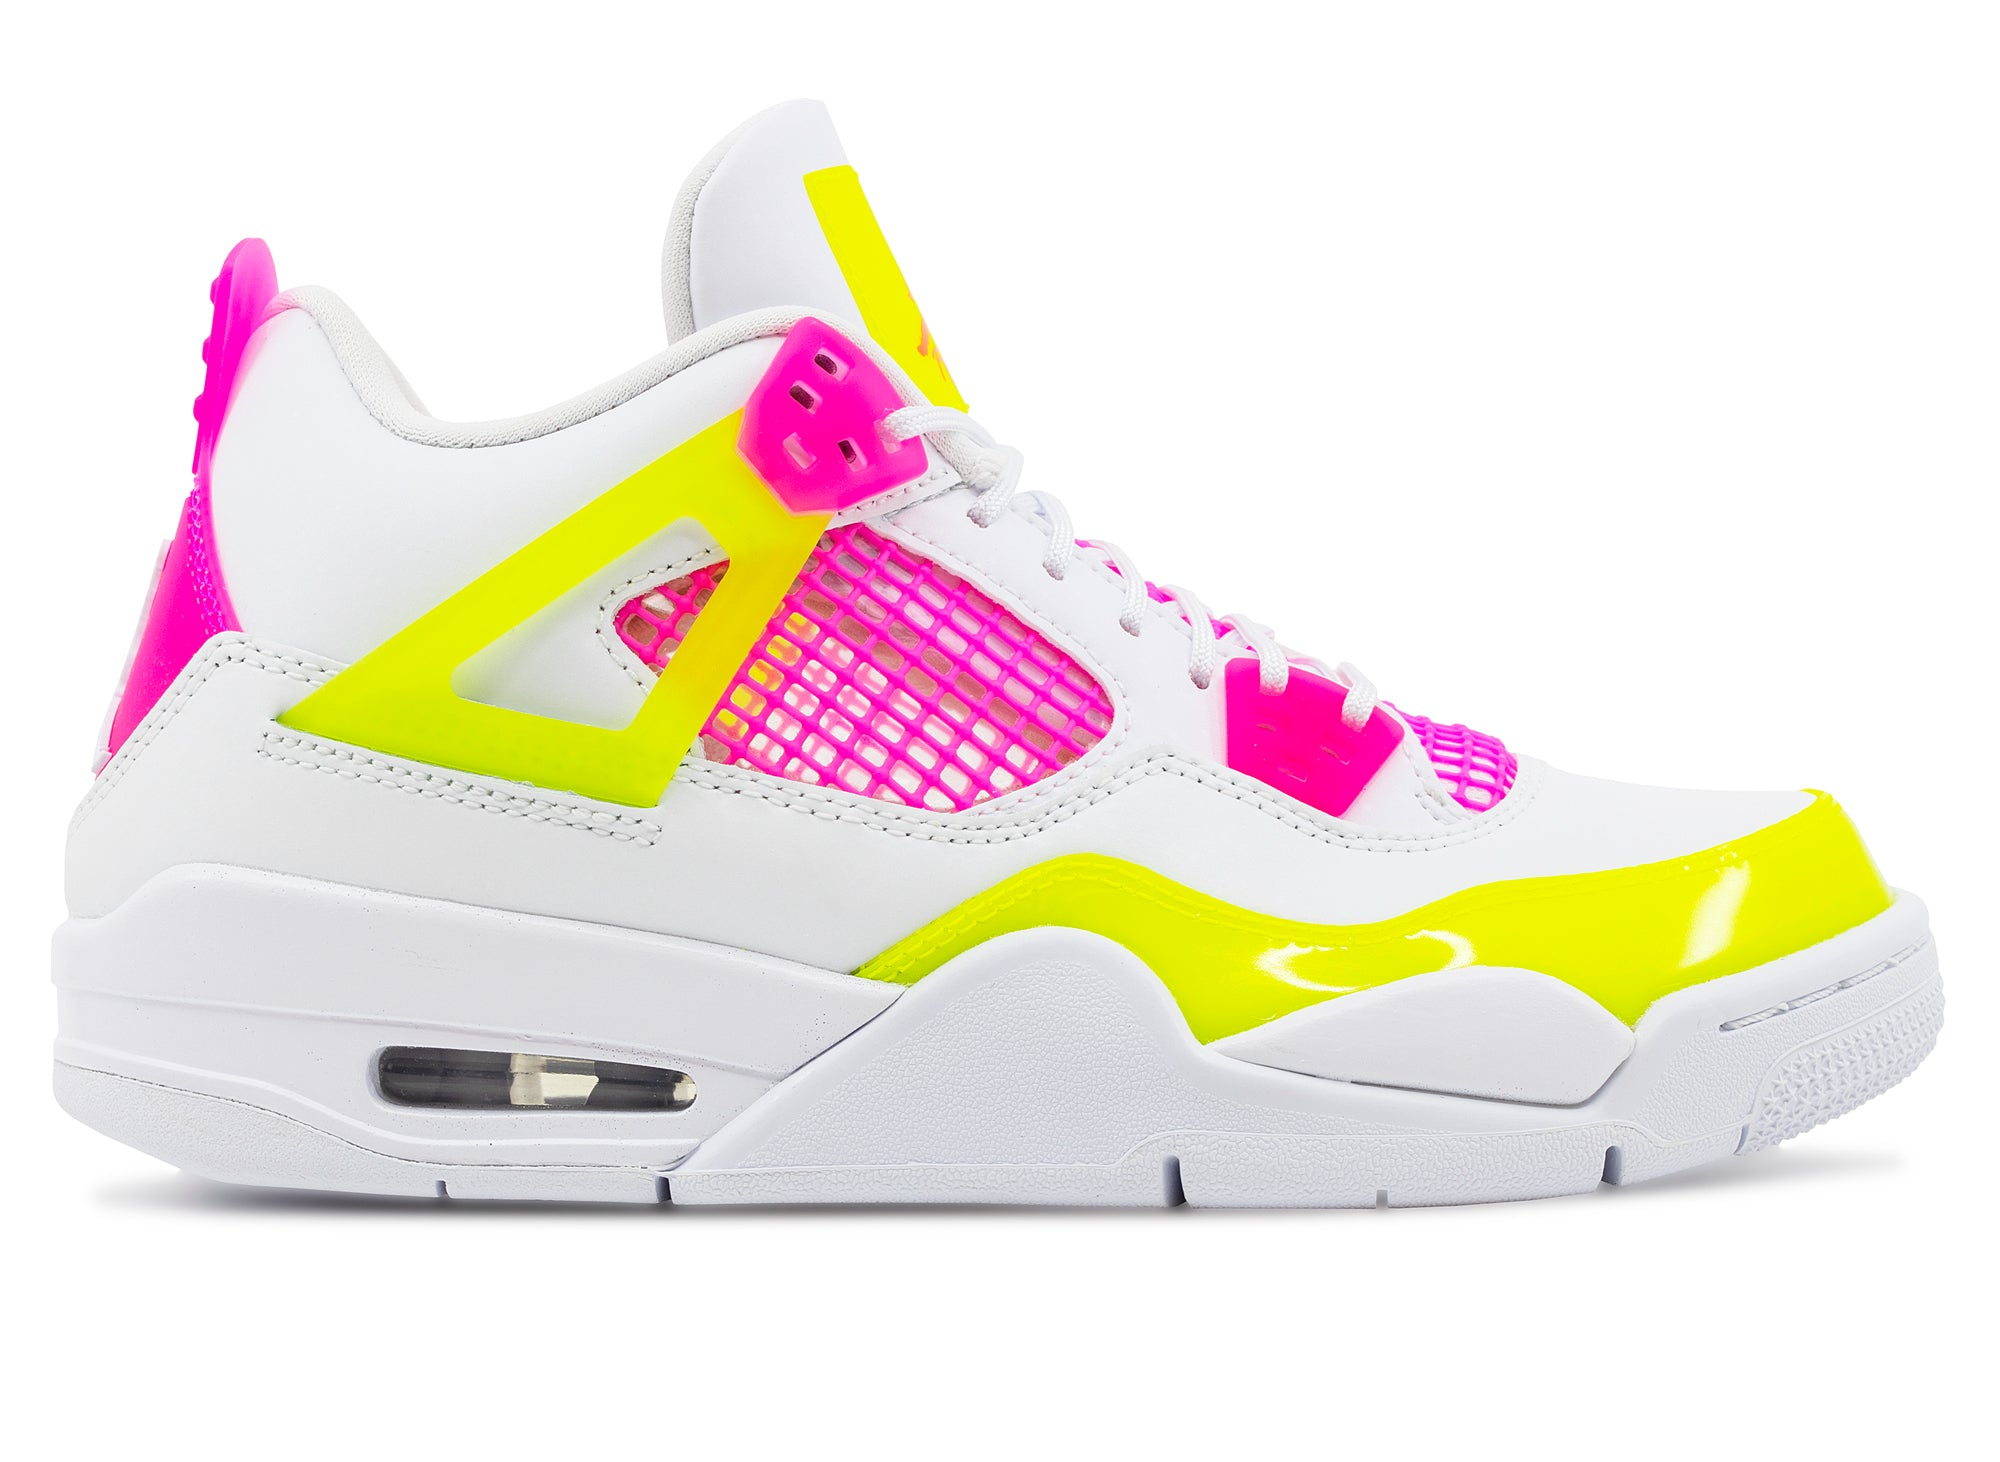 GS Air Jordan 4 Retro SE 'Lemon Venom'